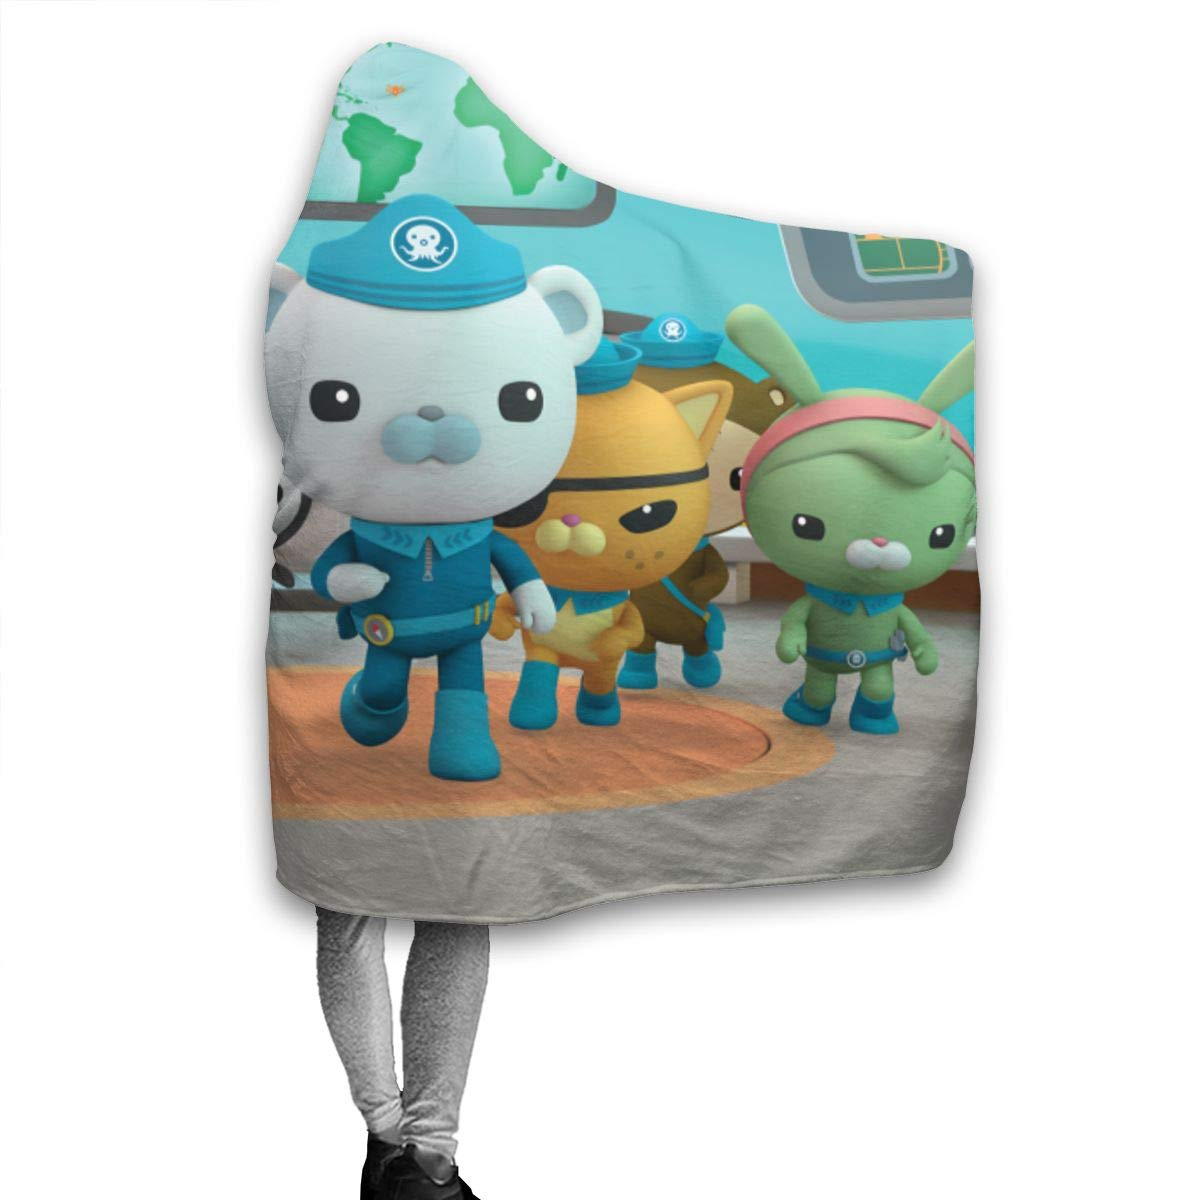 Soft Cloak Shawl Wrap 50 x 40 Inch Camping Fall Wearable Blankets for Boys Girls Cartoon Octonauts Captain Barnacles Bear Diving Poster Hooded Blankets for Daycare